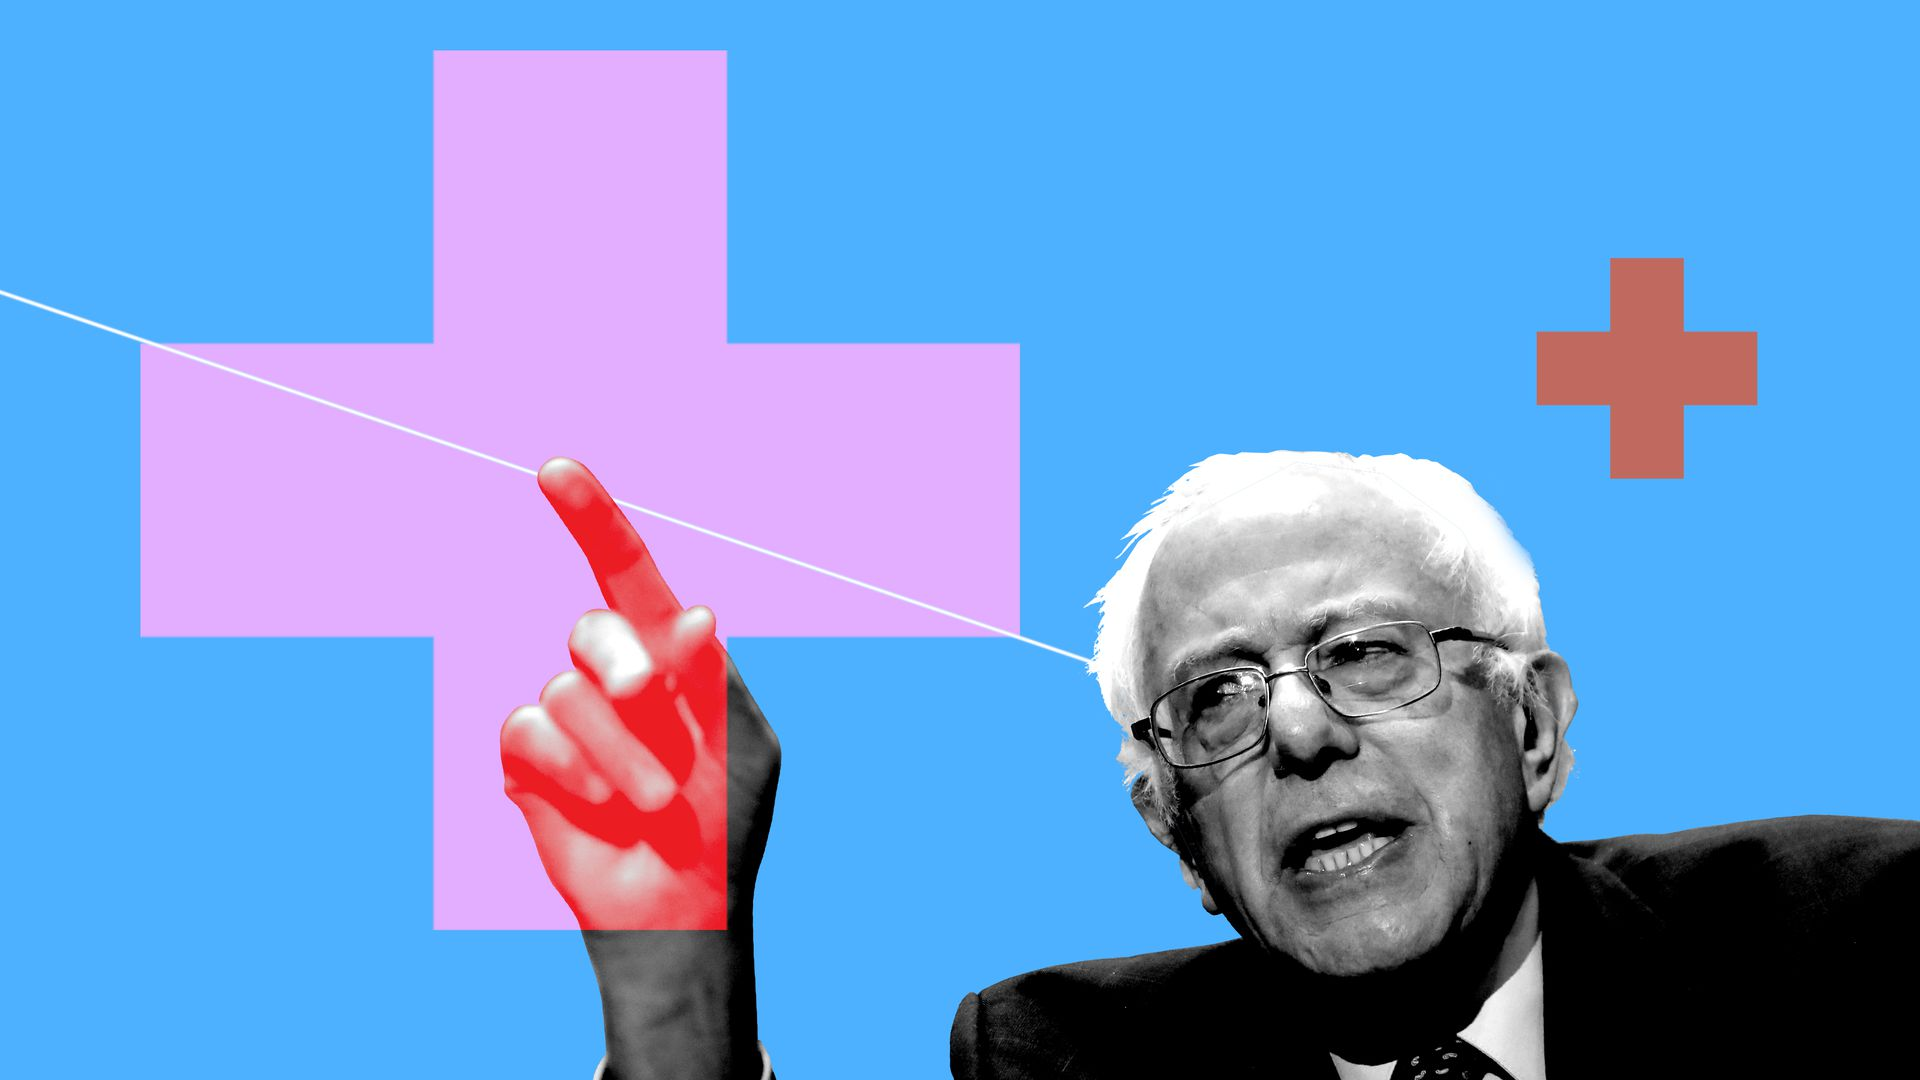 Illustrated collage of Bernie Sanders with red crosses.